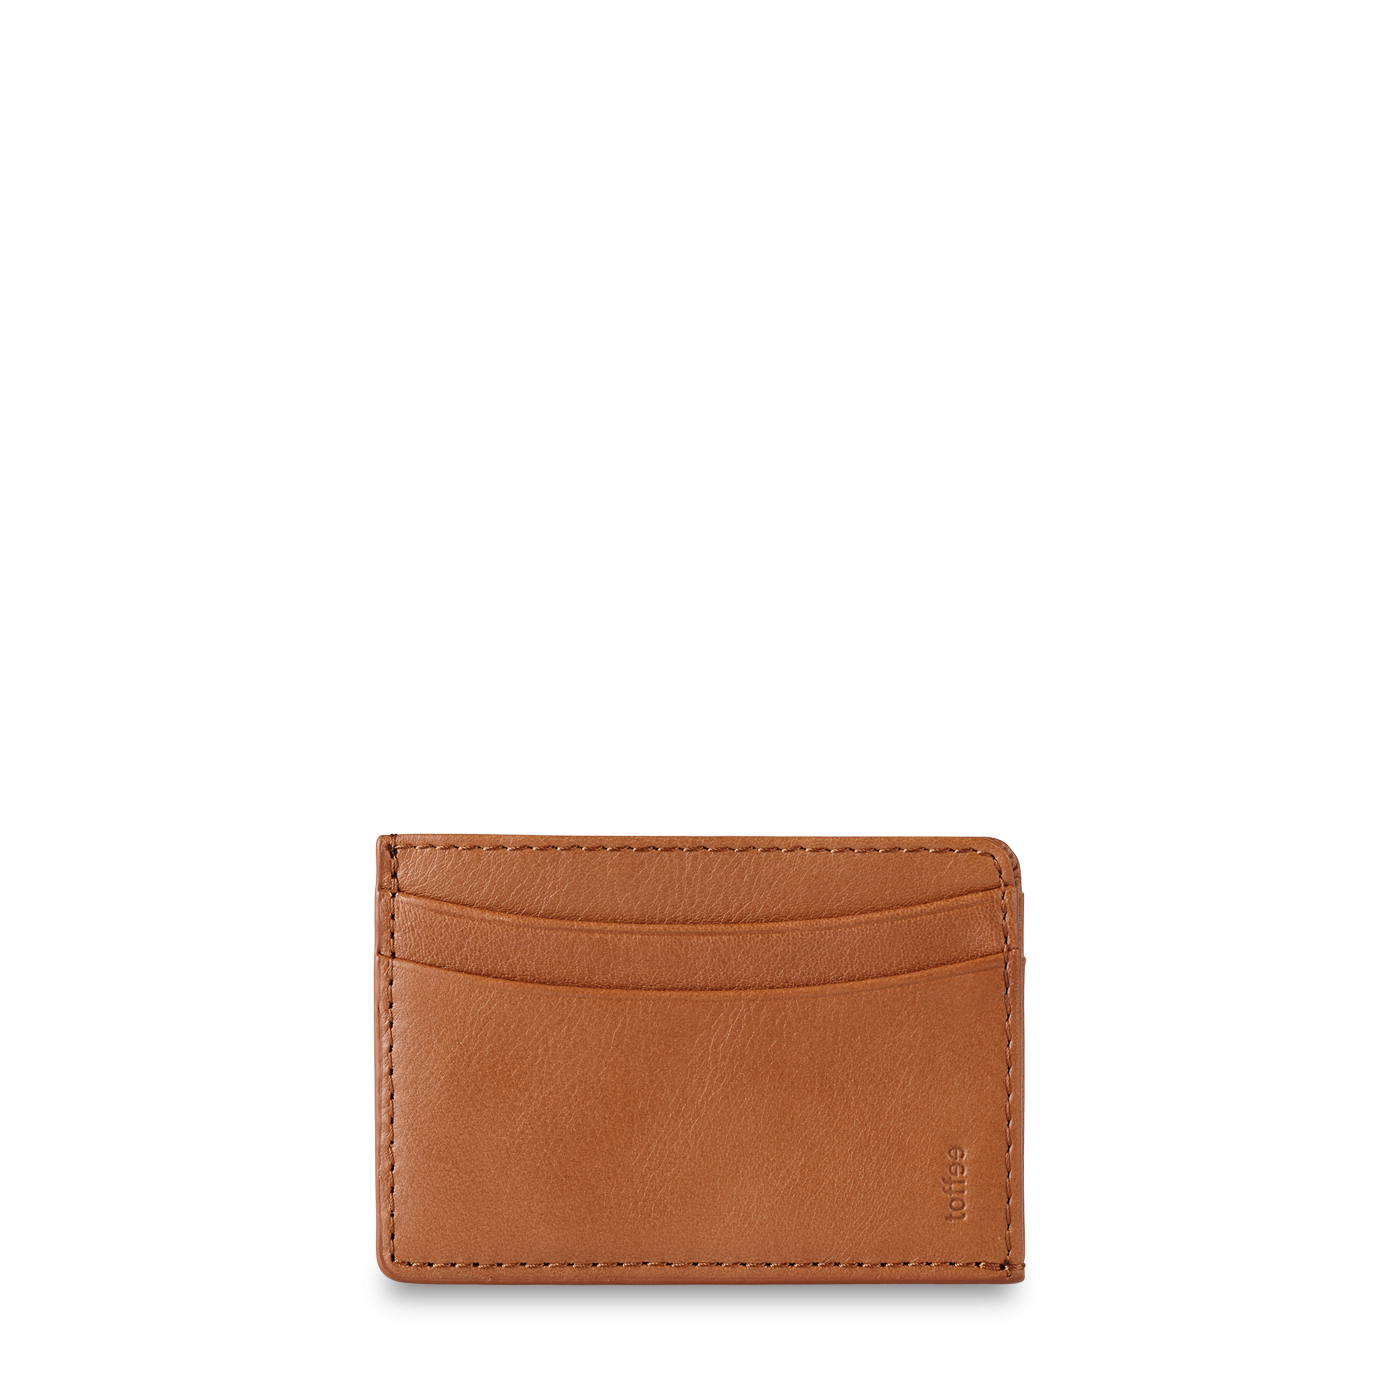 Pure Wallet Vector Image 25142